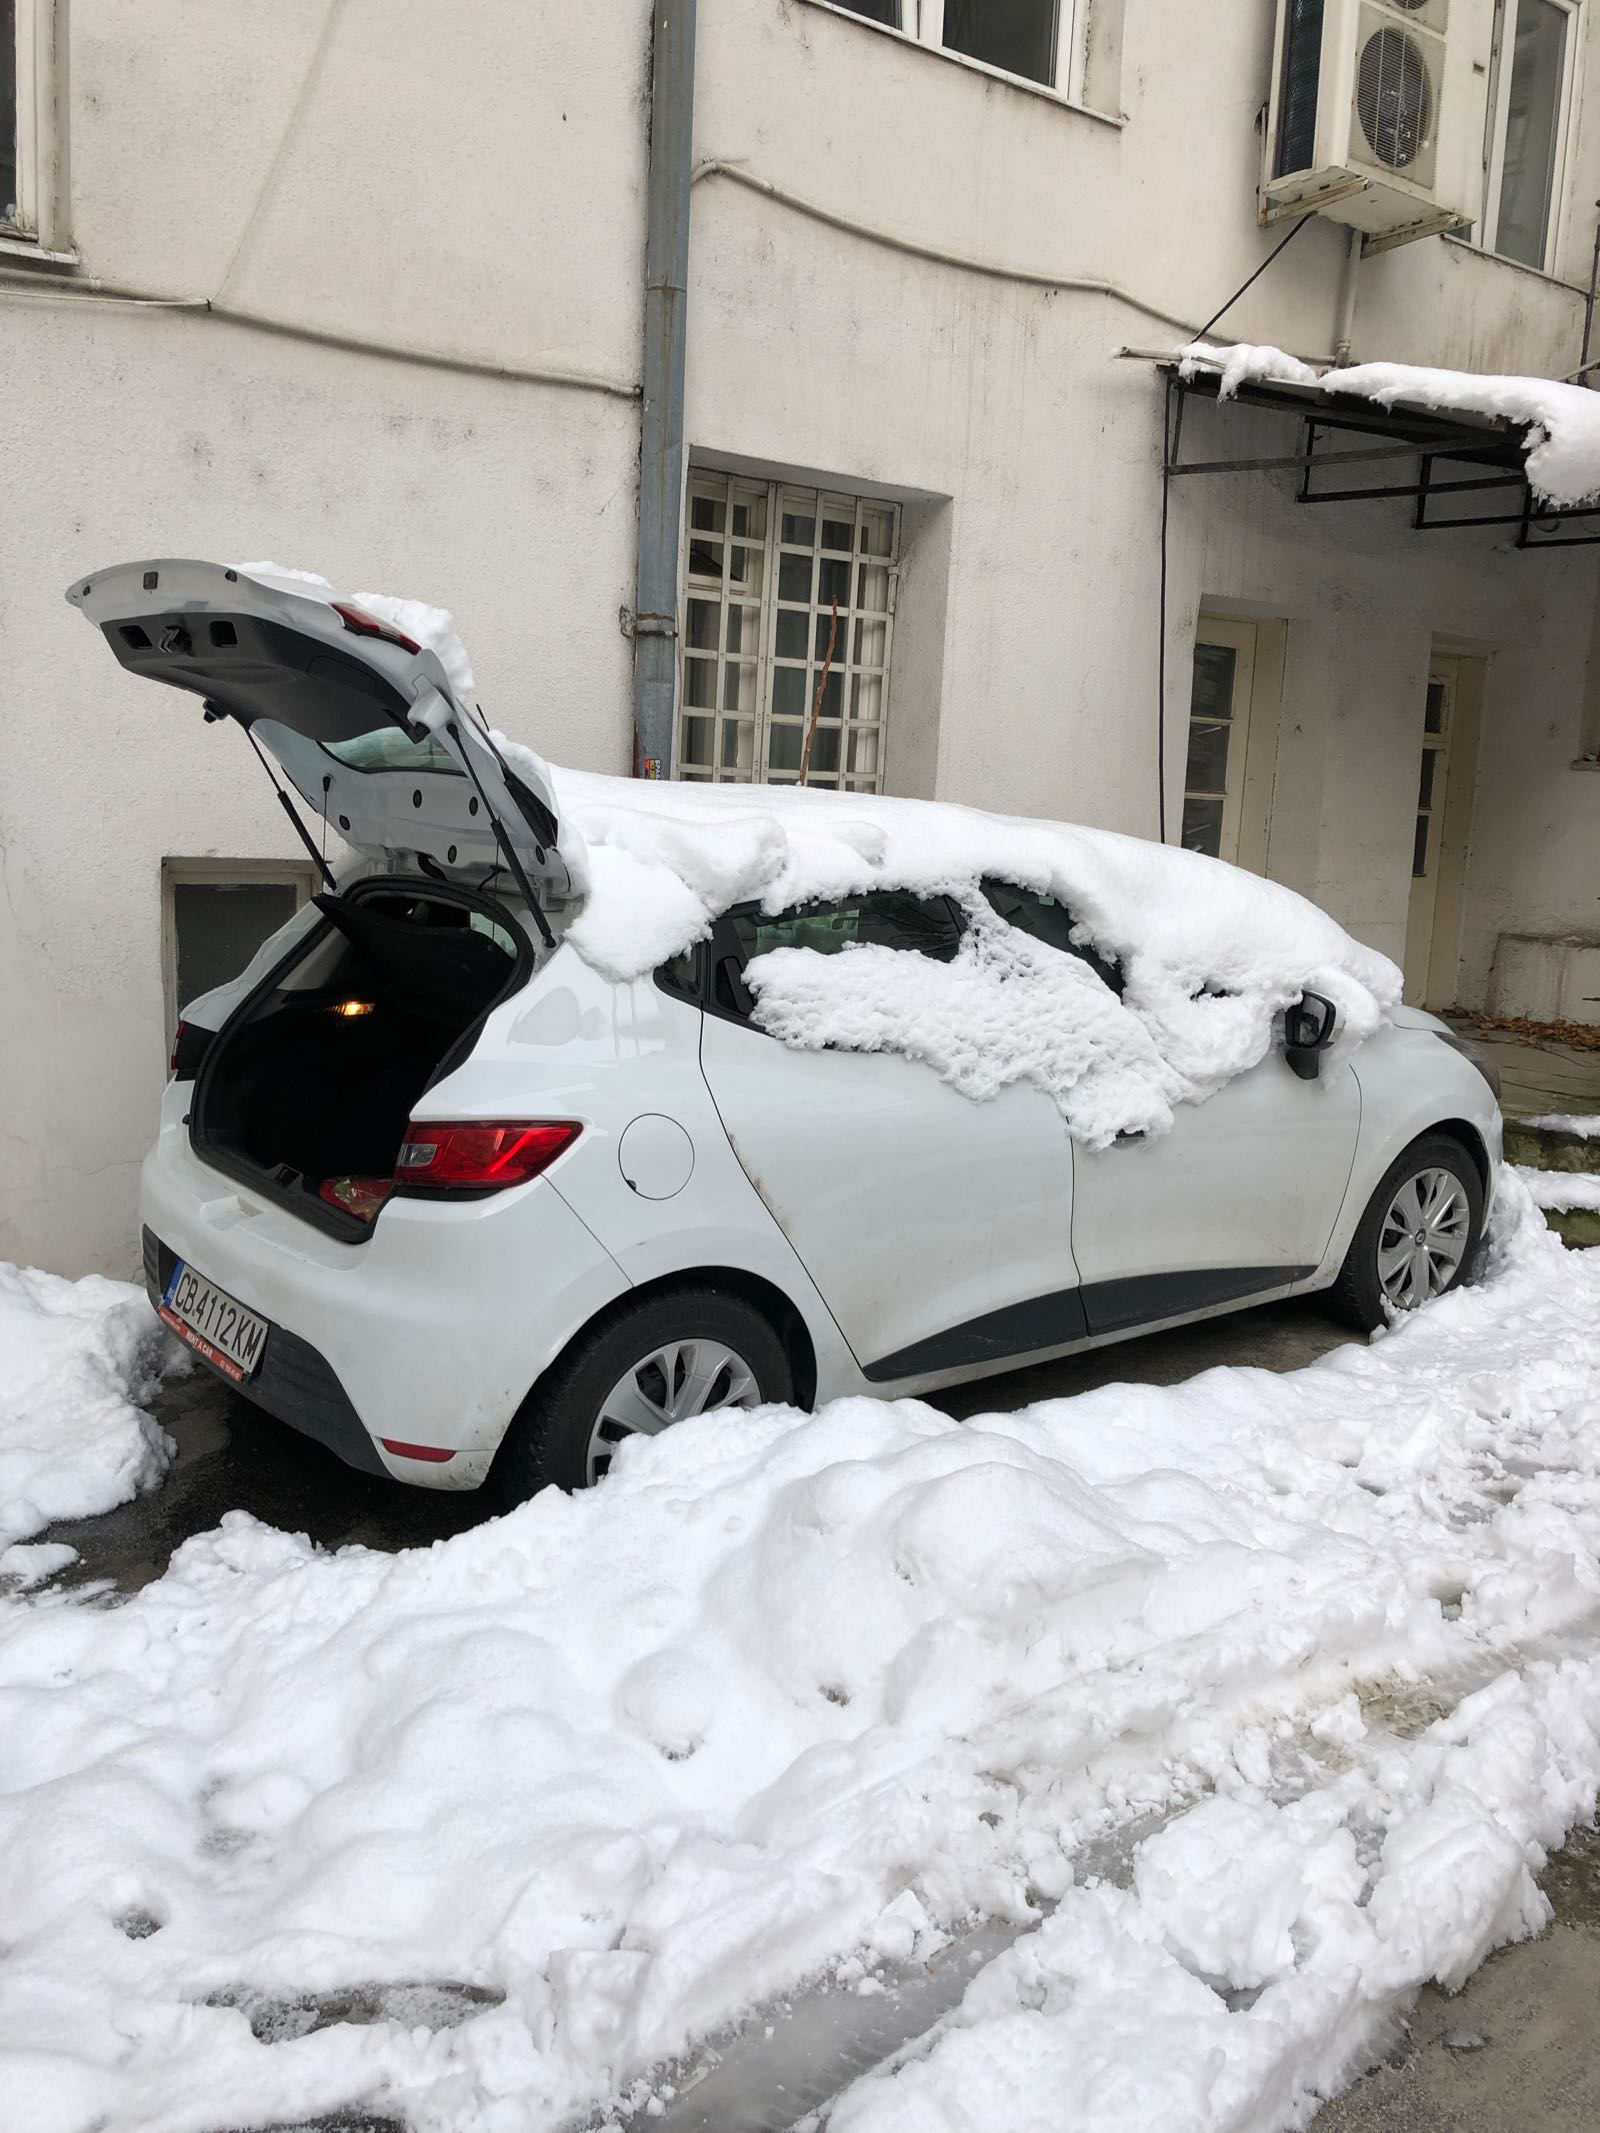 Rental Car Covered In Snow